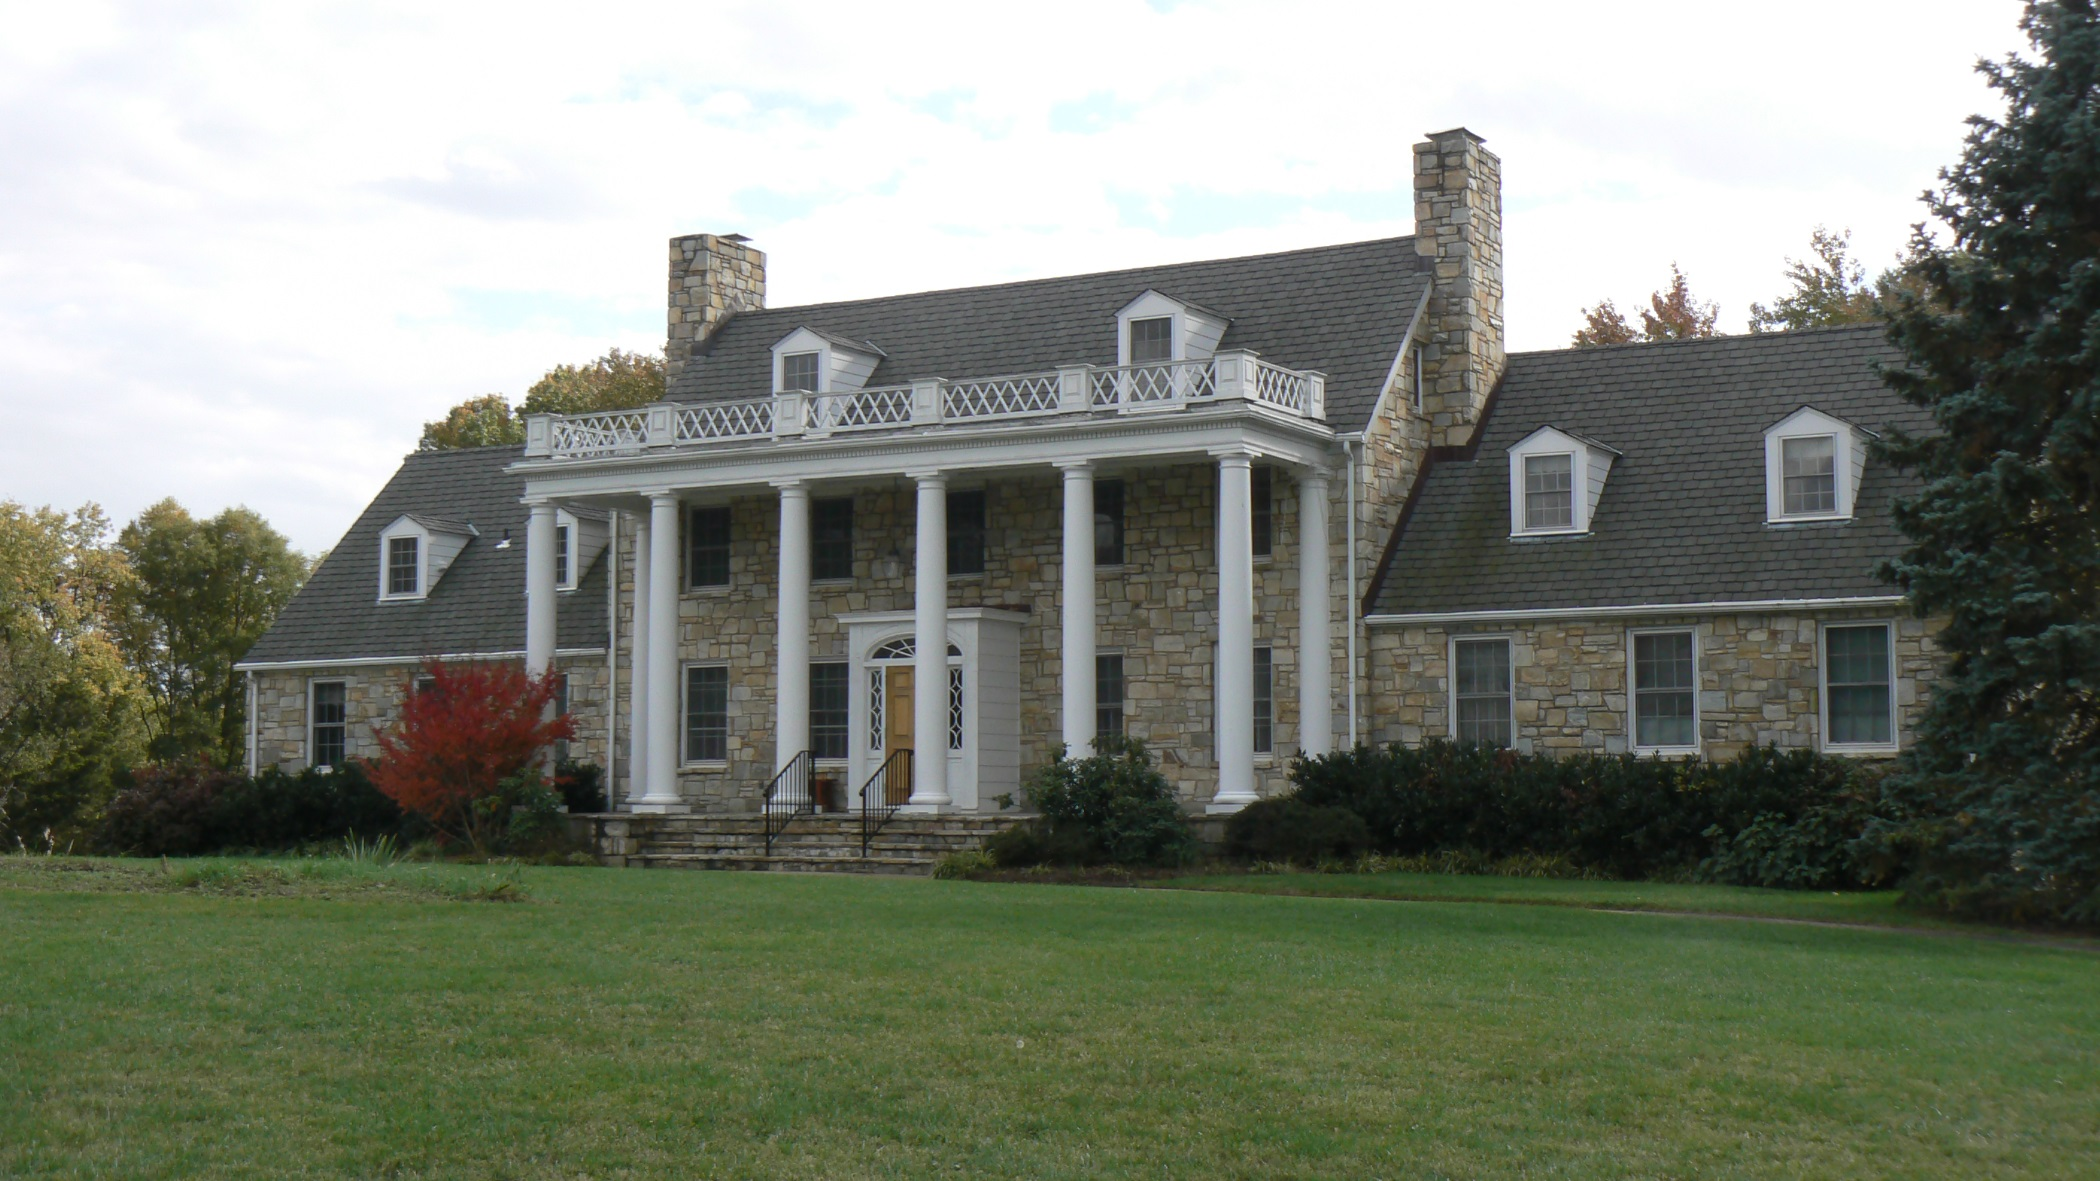 Retirement - now known as Stone Mansion